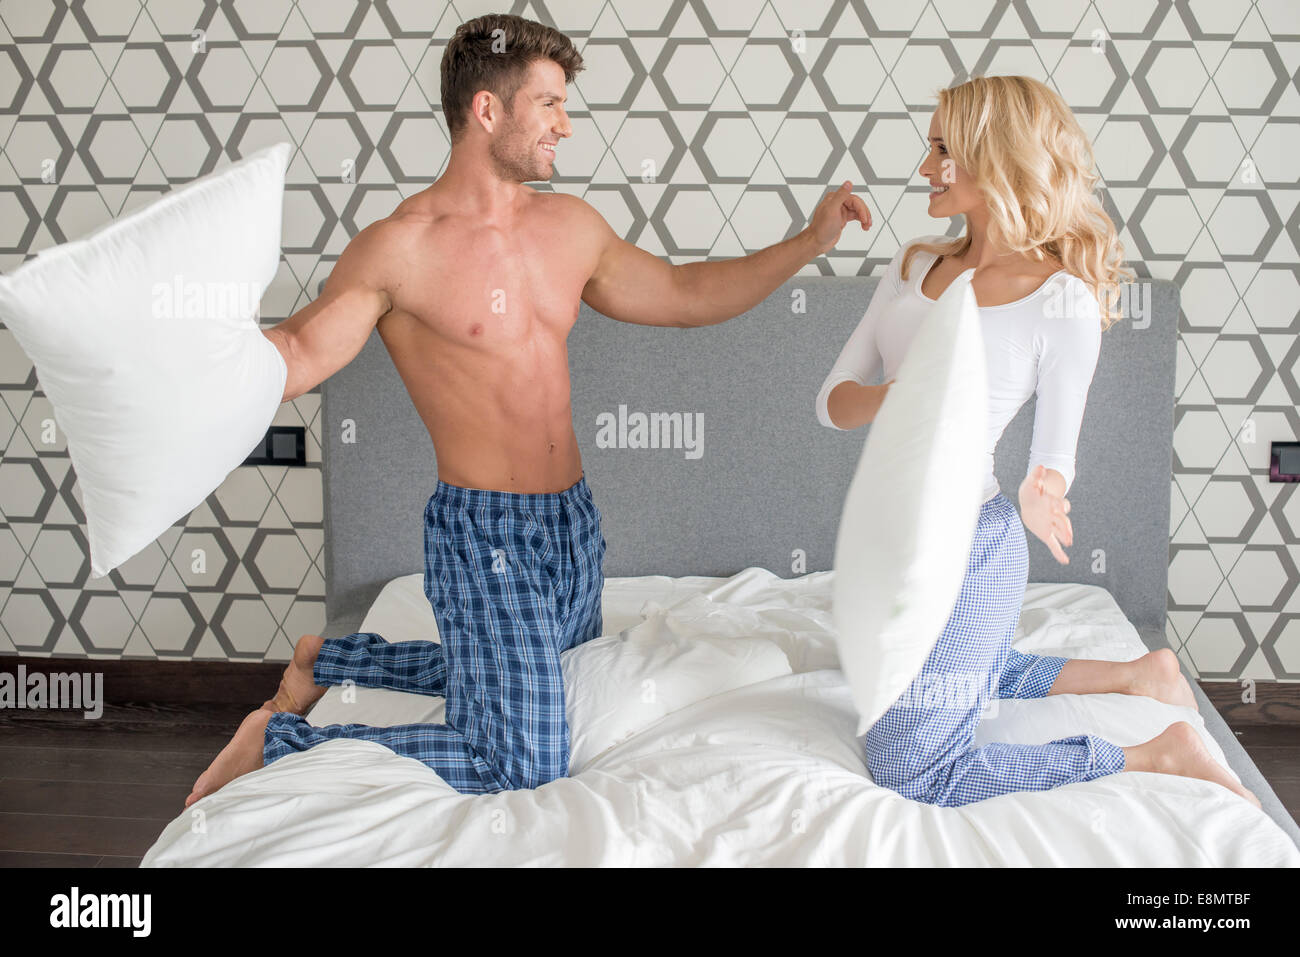 Couple in their sleepwear having a pillow fight - Stock Image